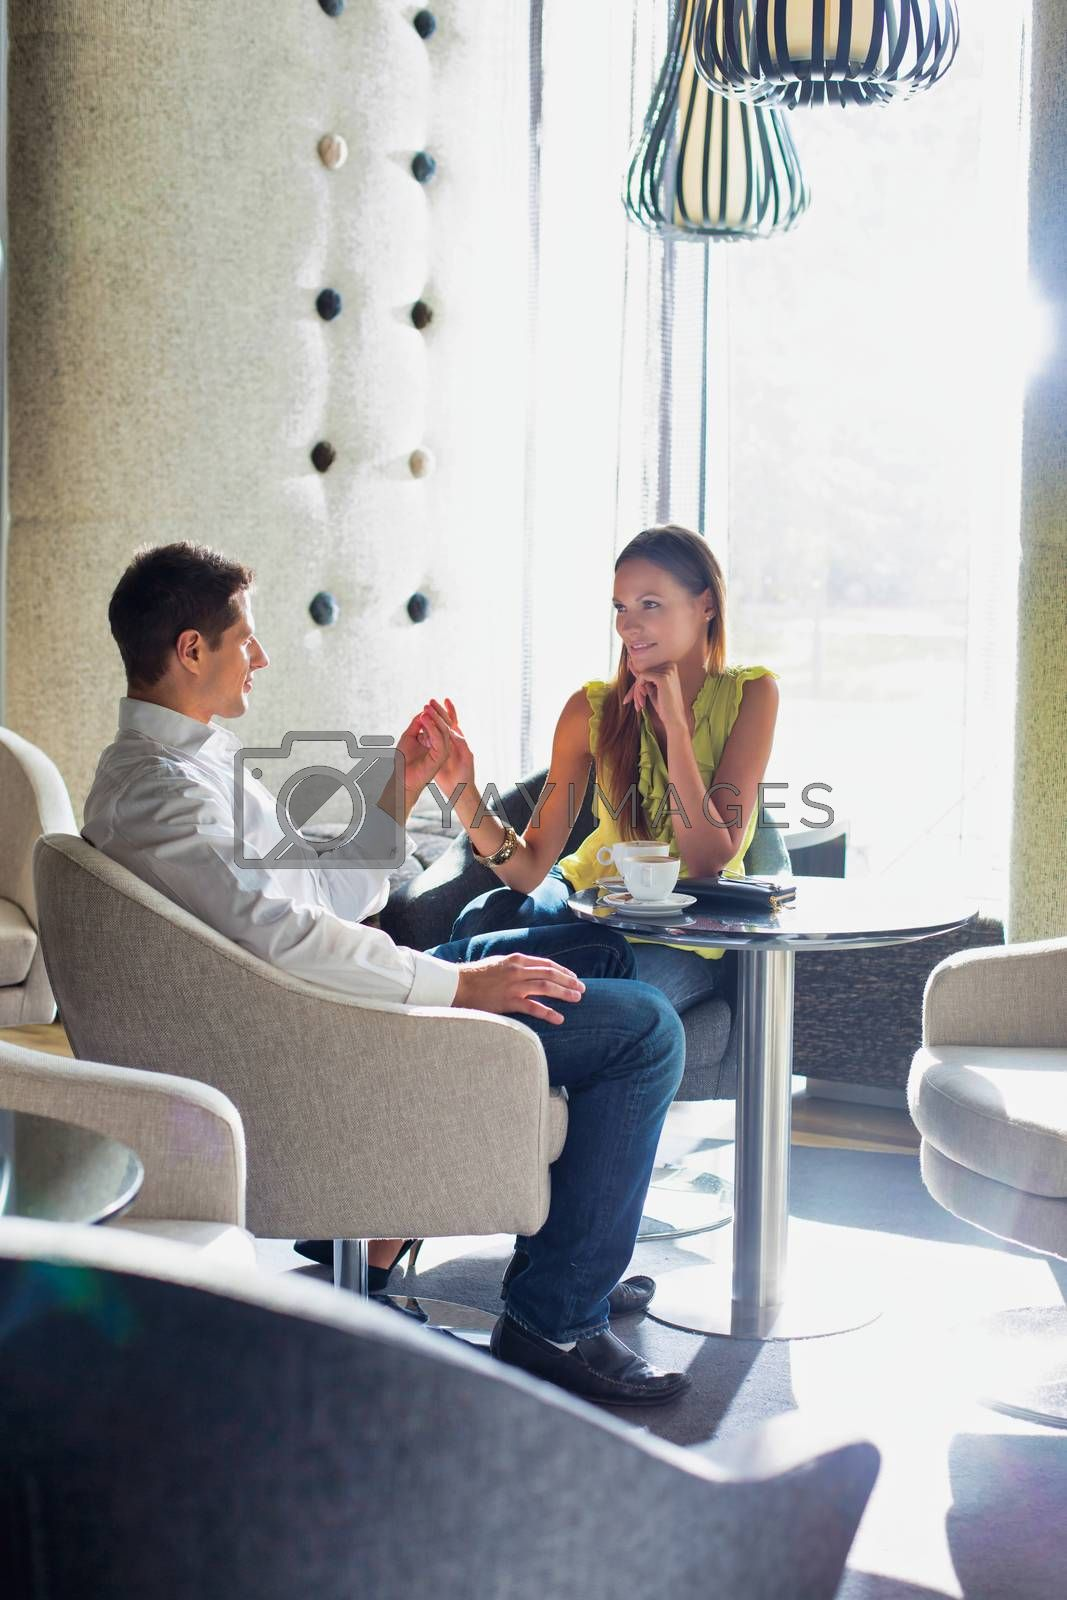 Couple on a date in a café or restaurant by moodboard